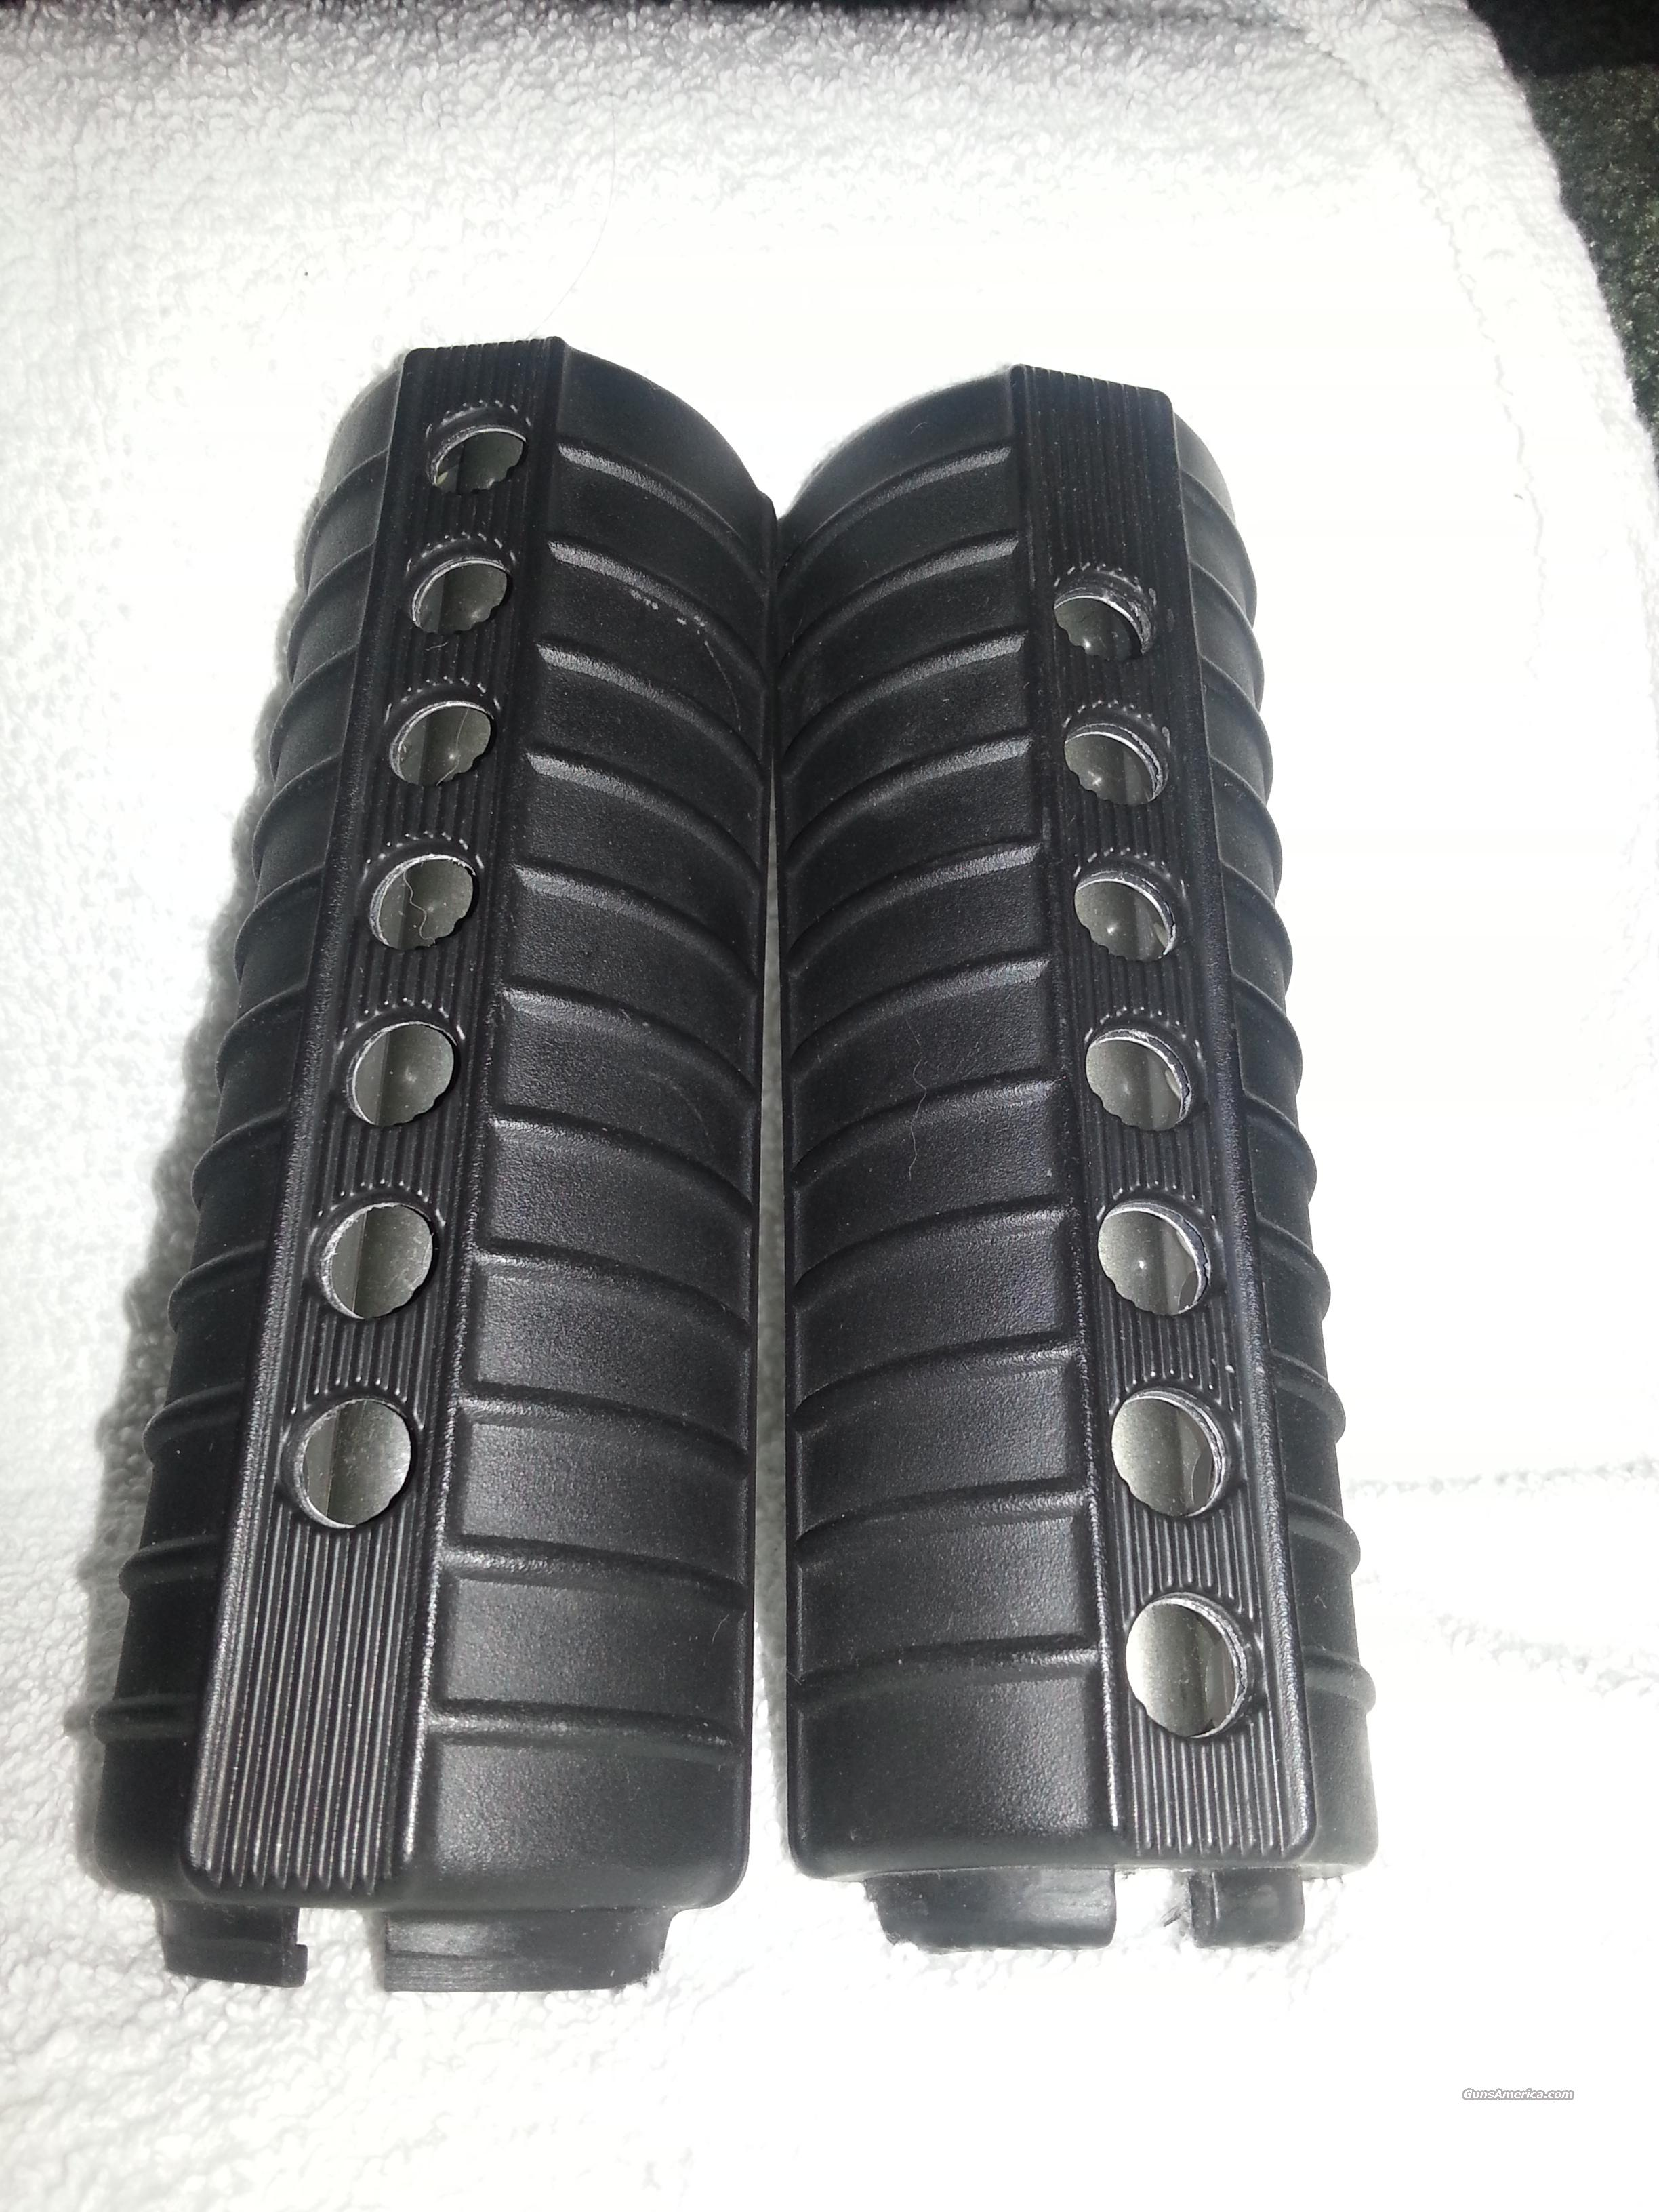 COLT 6920  M4 Handguards  Non-Guns > Gun Parts > By Manufacturer > Colt